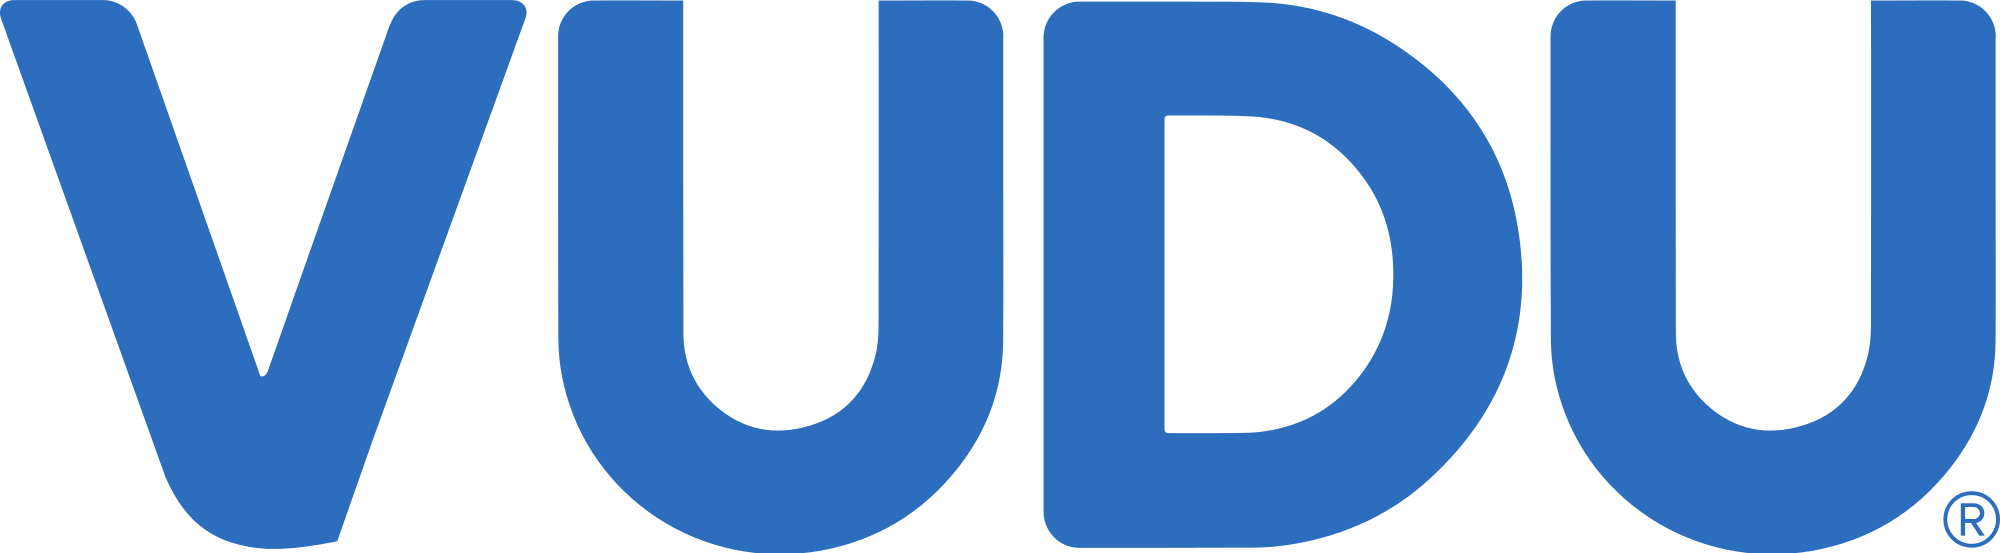 VUDU logo ONE LAST PRAYER